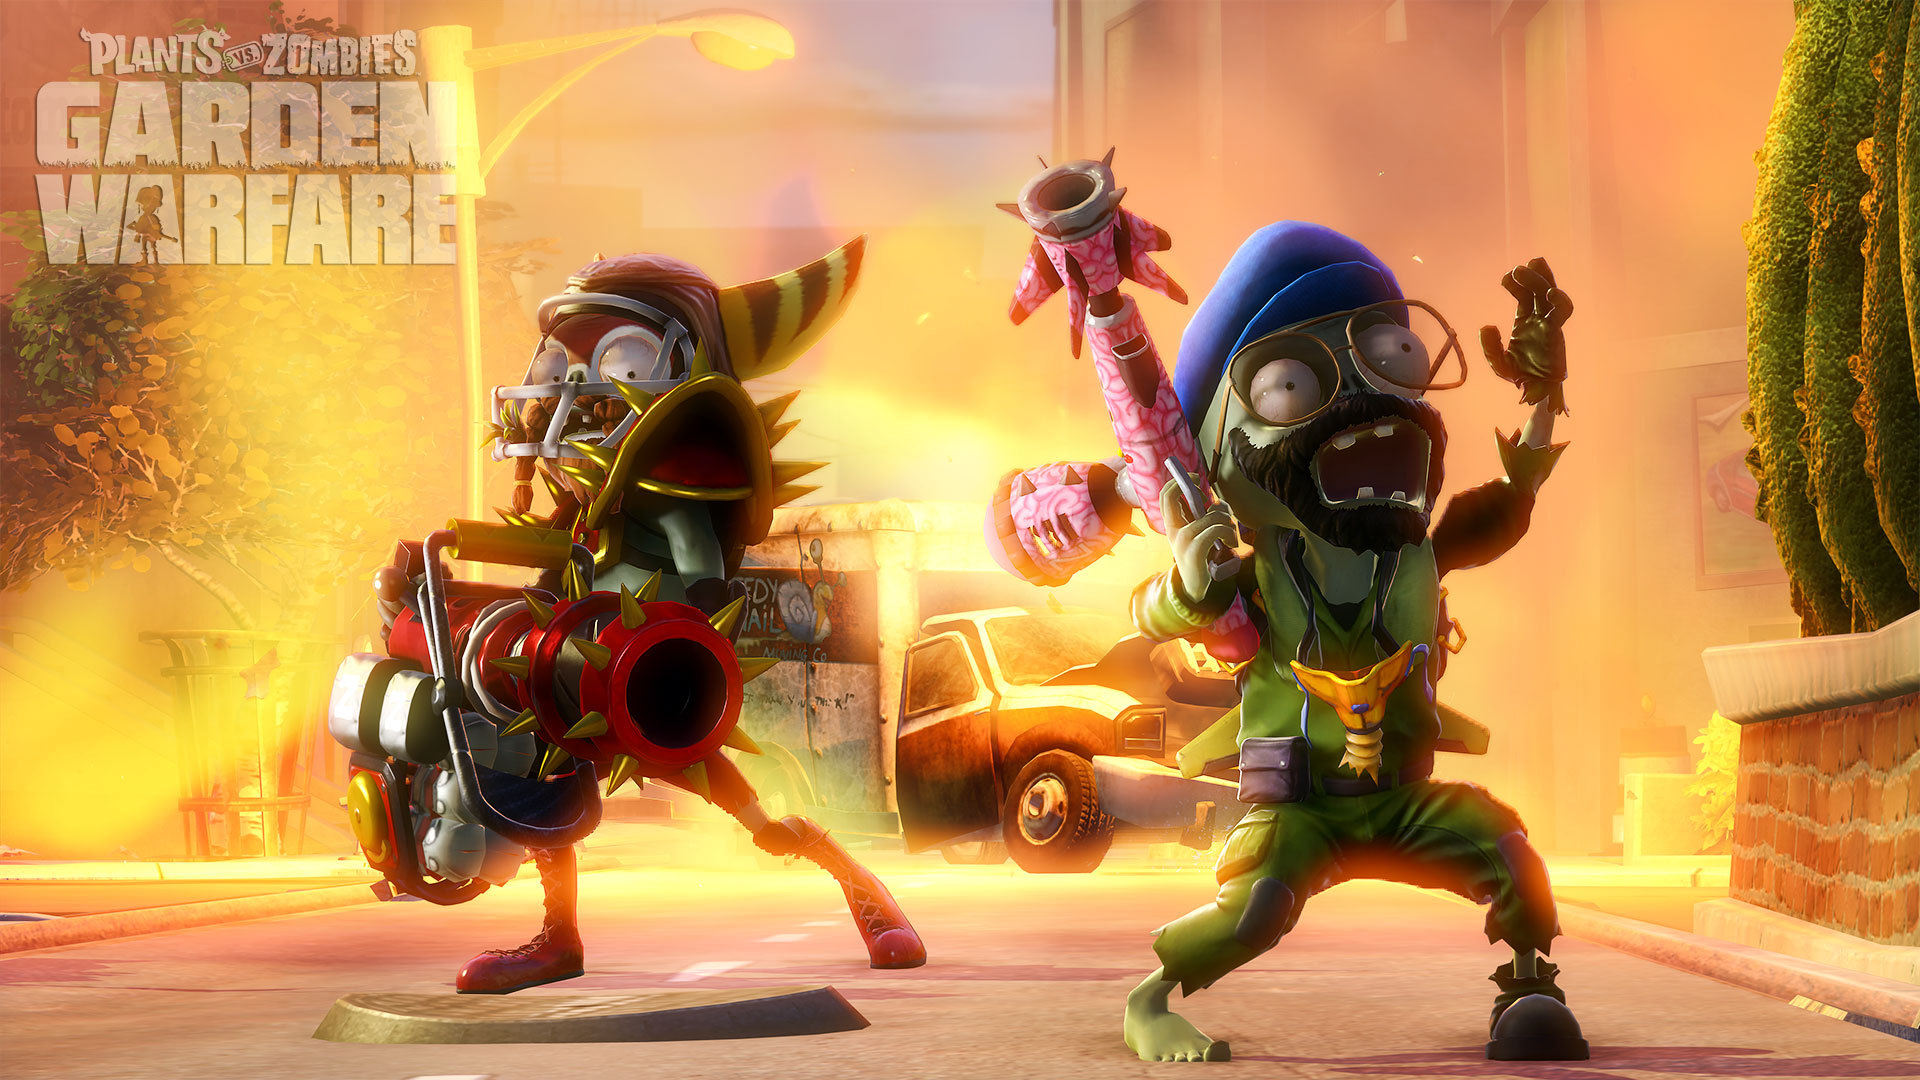 developer vs op gameplay garden warfare watch with zombies commentary player co game plants